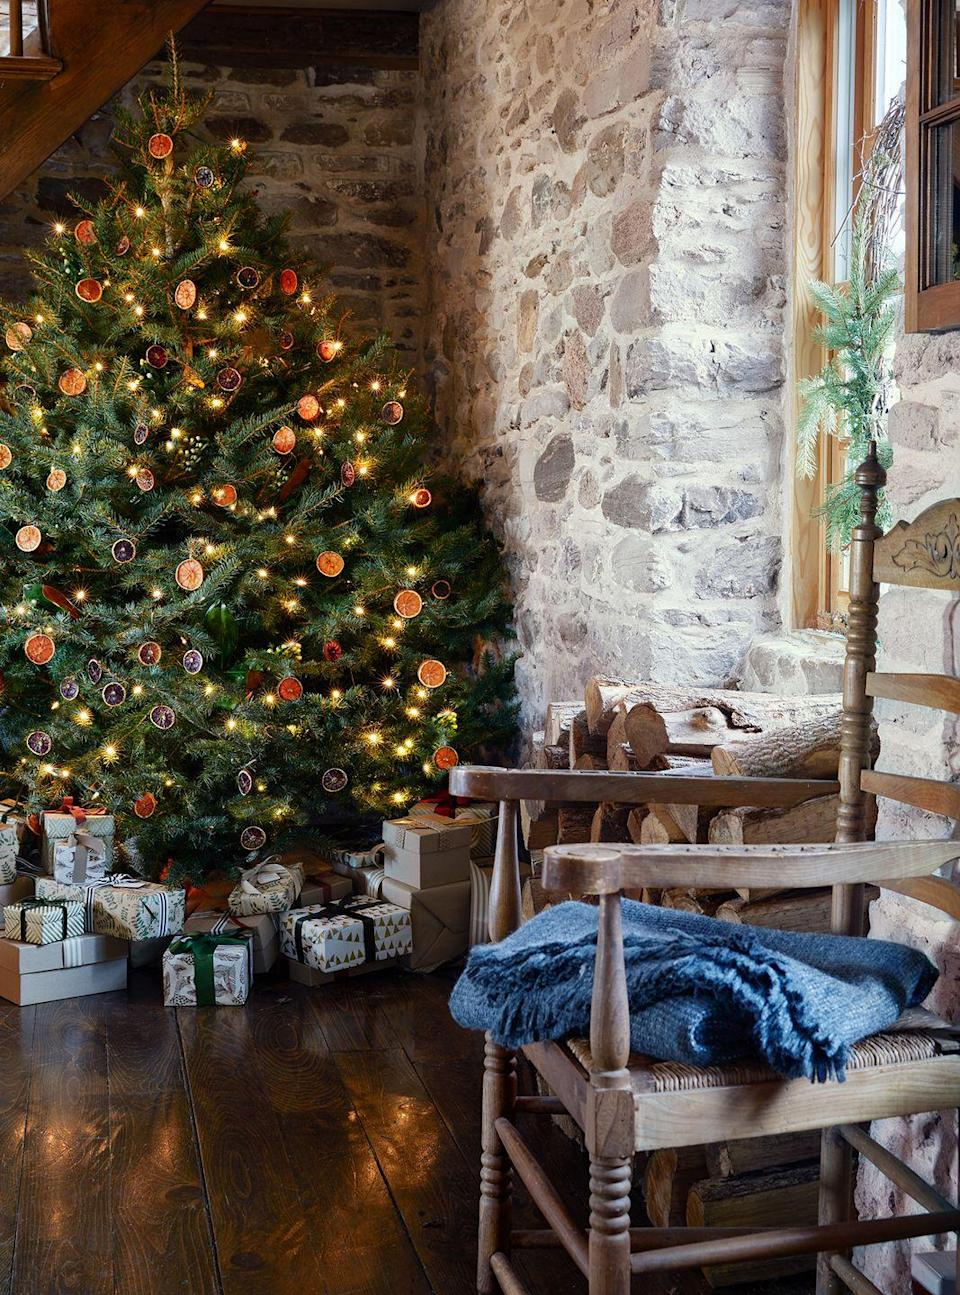 """<p>Equal parts unexpected and refreshing, spruce up your tree with dried orange slices if you're seeking a conversation starter for your celebration. </p><p><strong>RELATED:</strong> <a href=""""https://www.goodhousekeeping.com/holidays/christmas-ideas/a24803/tips-to-keep-a-christmas-tree-fresh/"""" rel=""""nofollow noopener"""" target=""""_blank"""" data-ylk=""""slk:How to Make Your Christmas Tree Last Longer"""" class=""""link rapid-noclick-resp"""">How to Make Your Christmas Tree Last Longer</a></p>"""